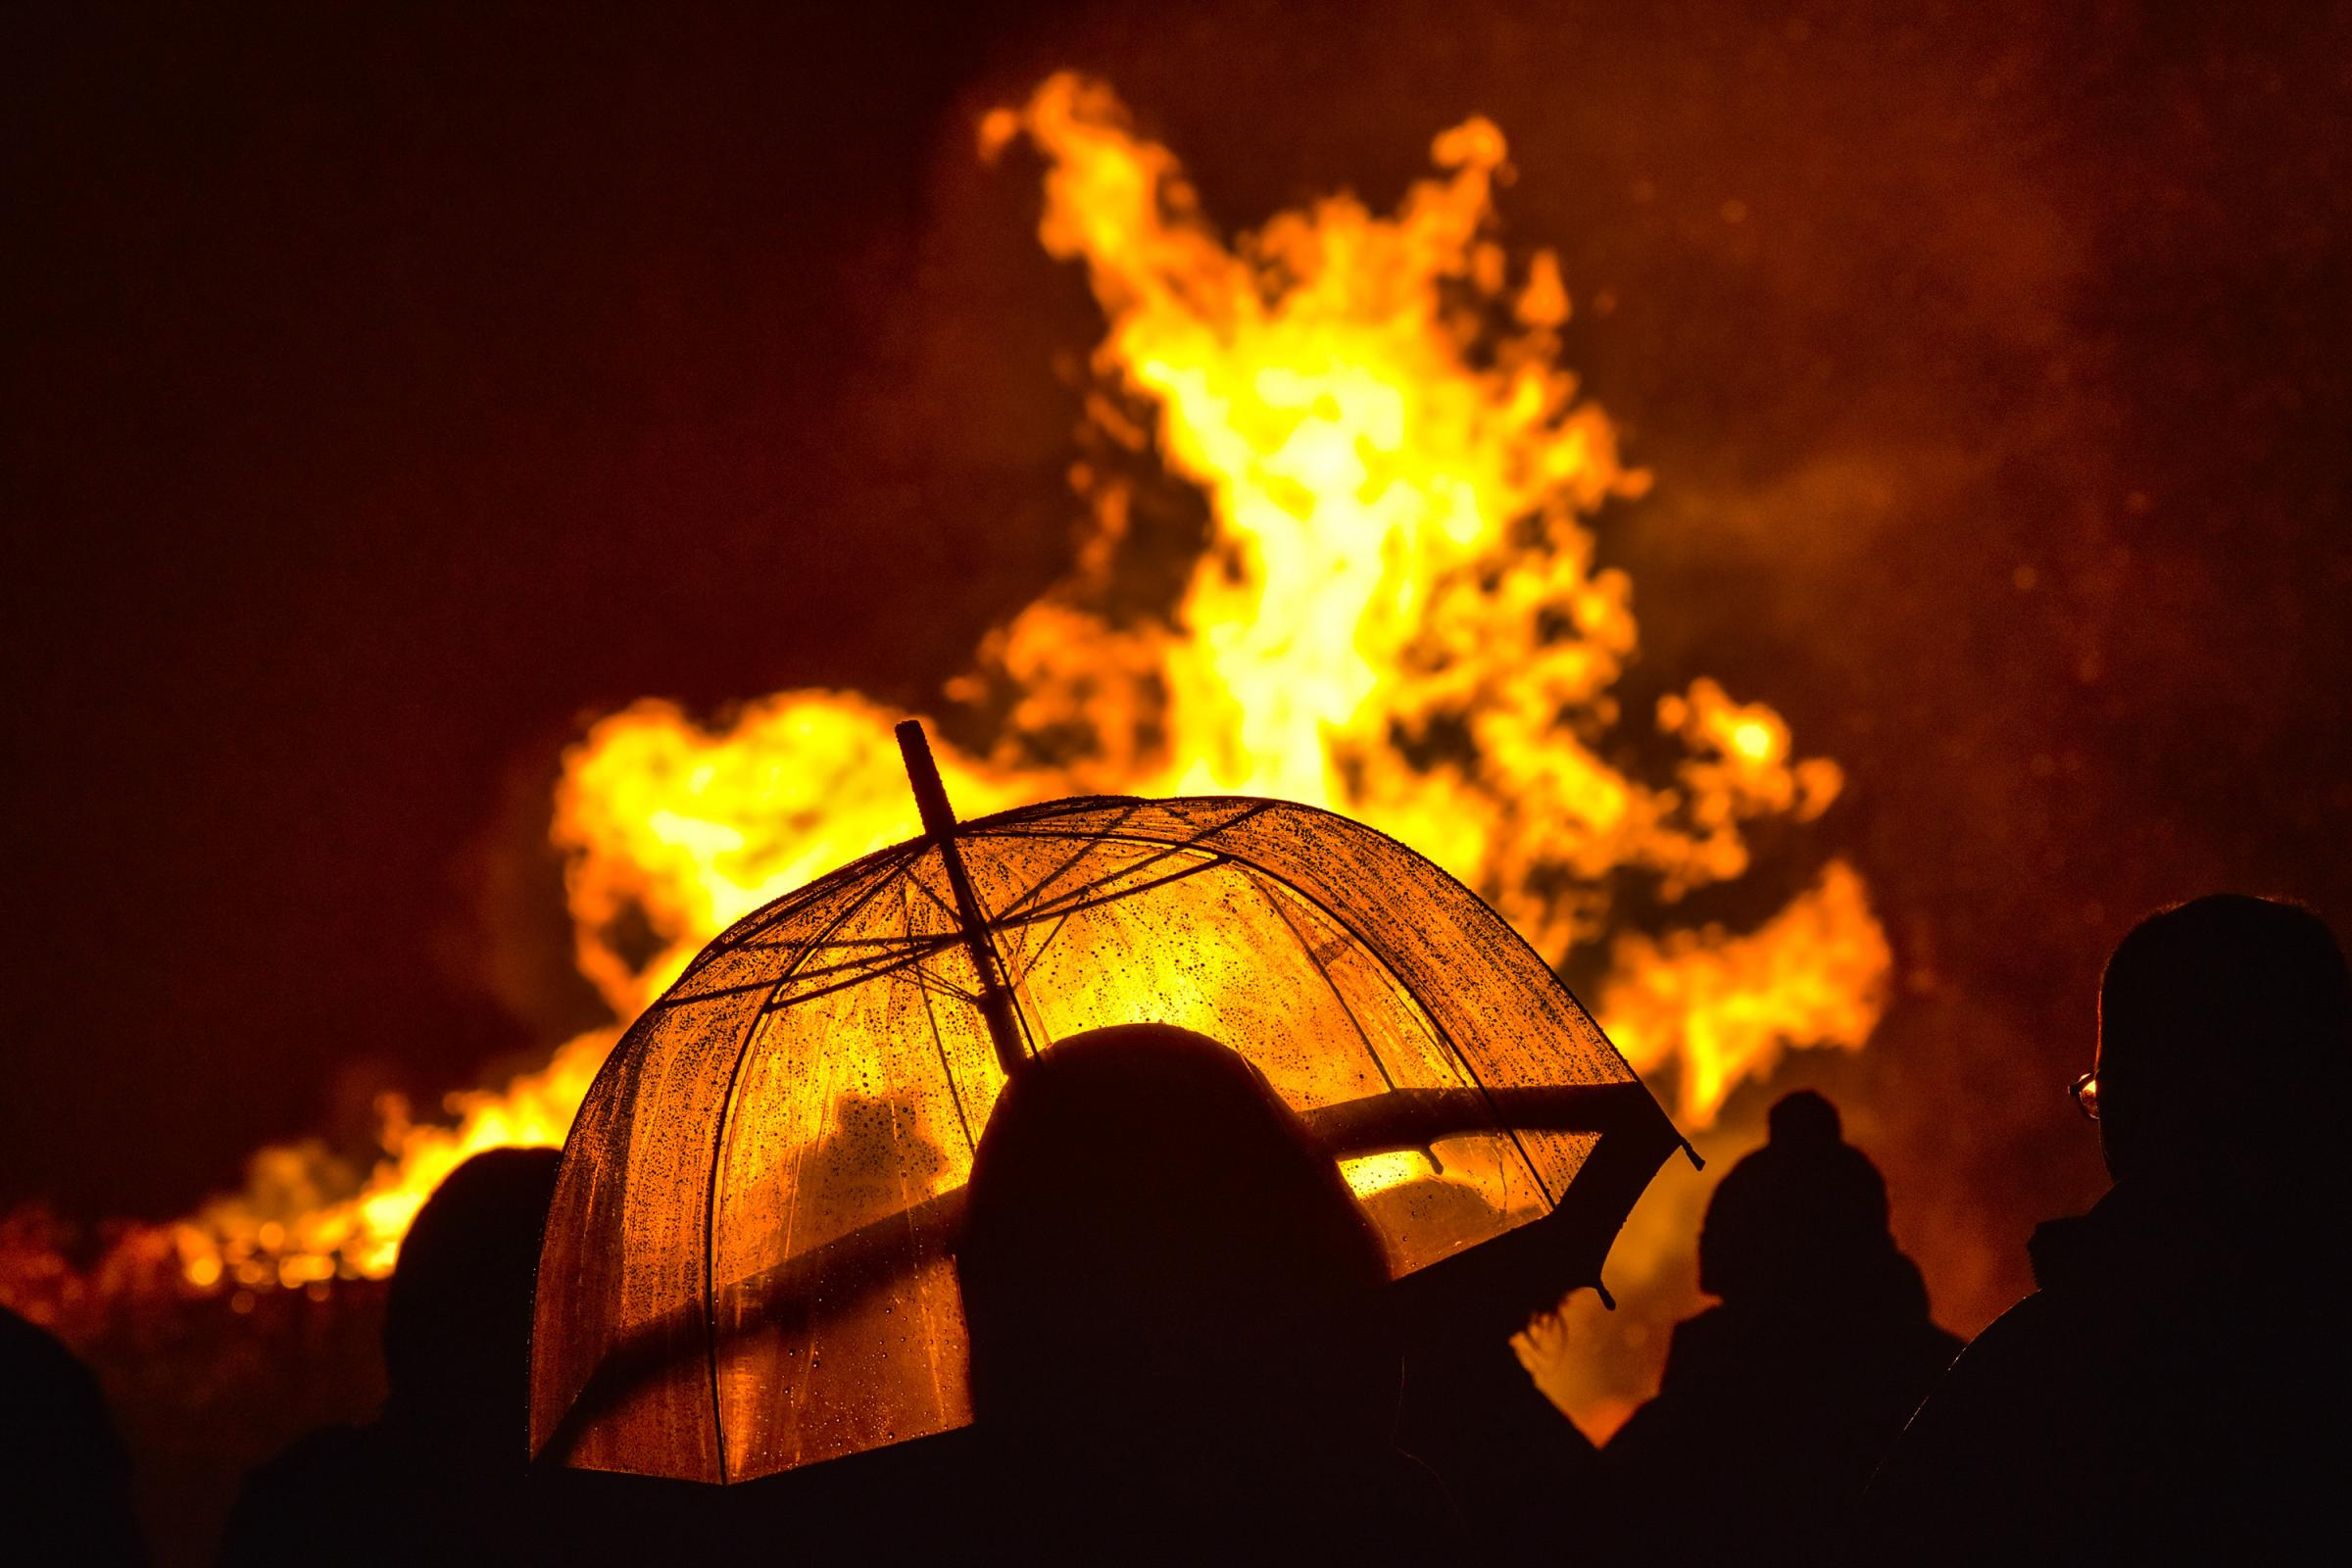 Families urged to attend organised displays on Bonfire Night to avoid injury